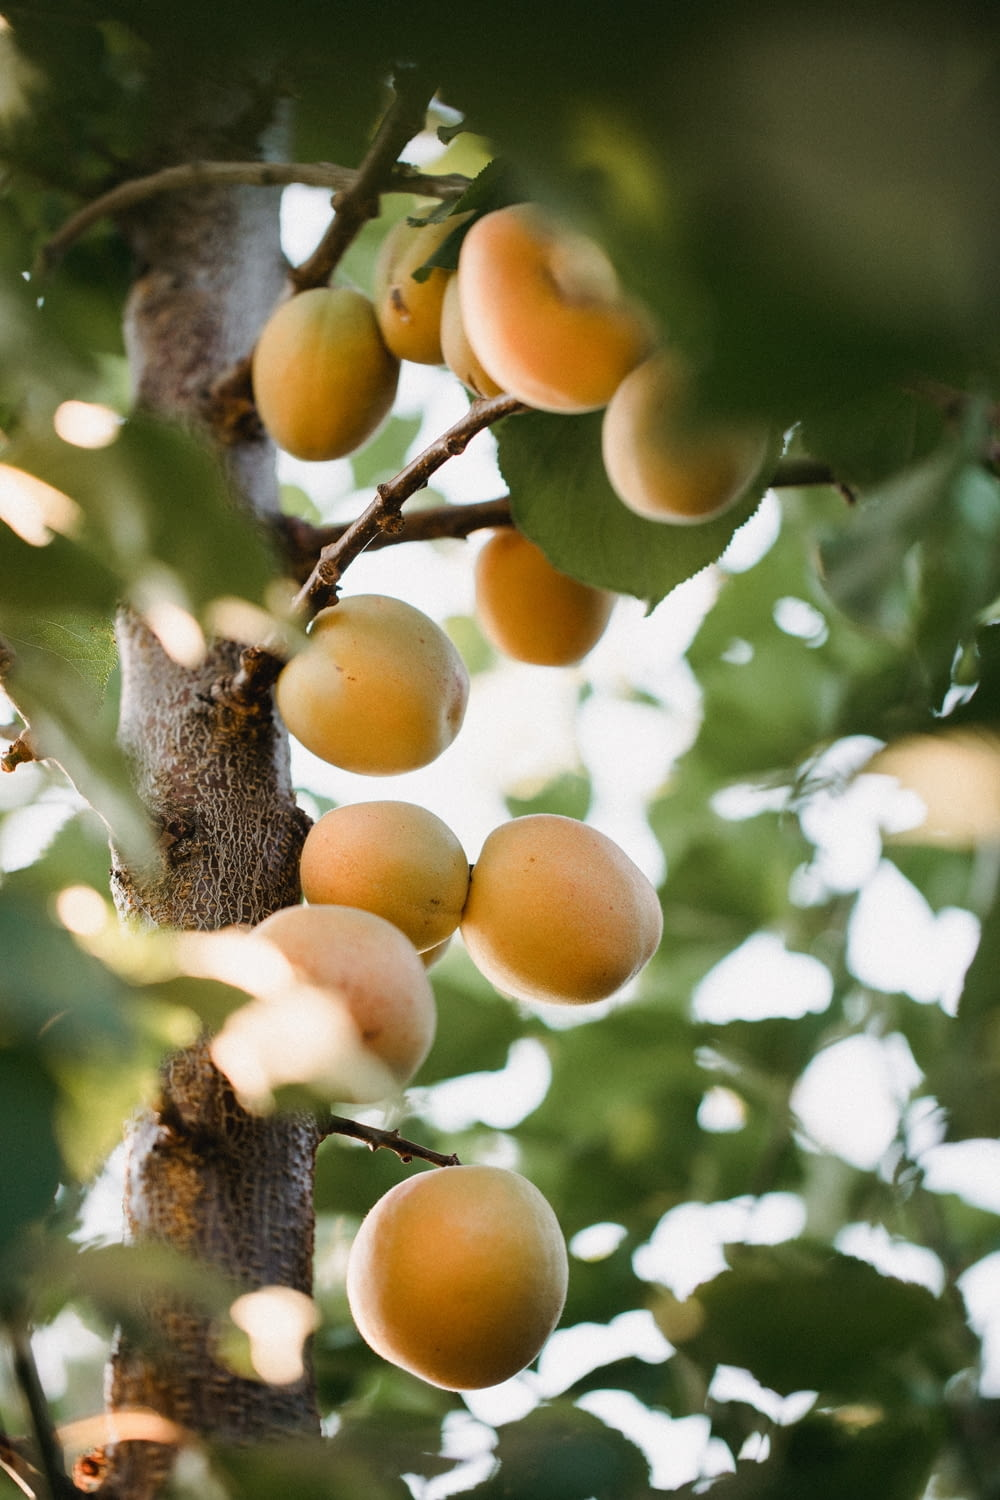 orange fruits on tree during daytime